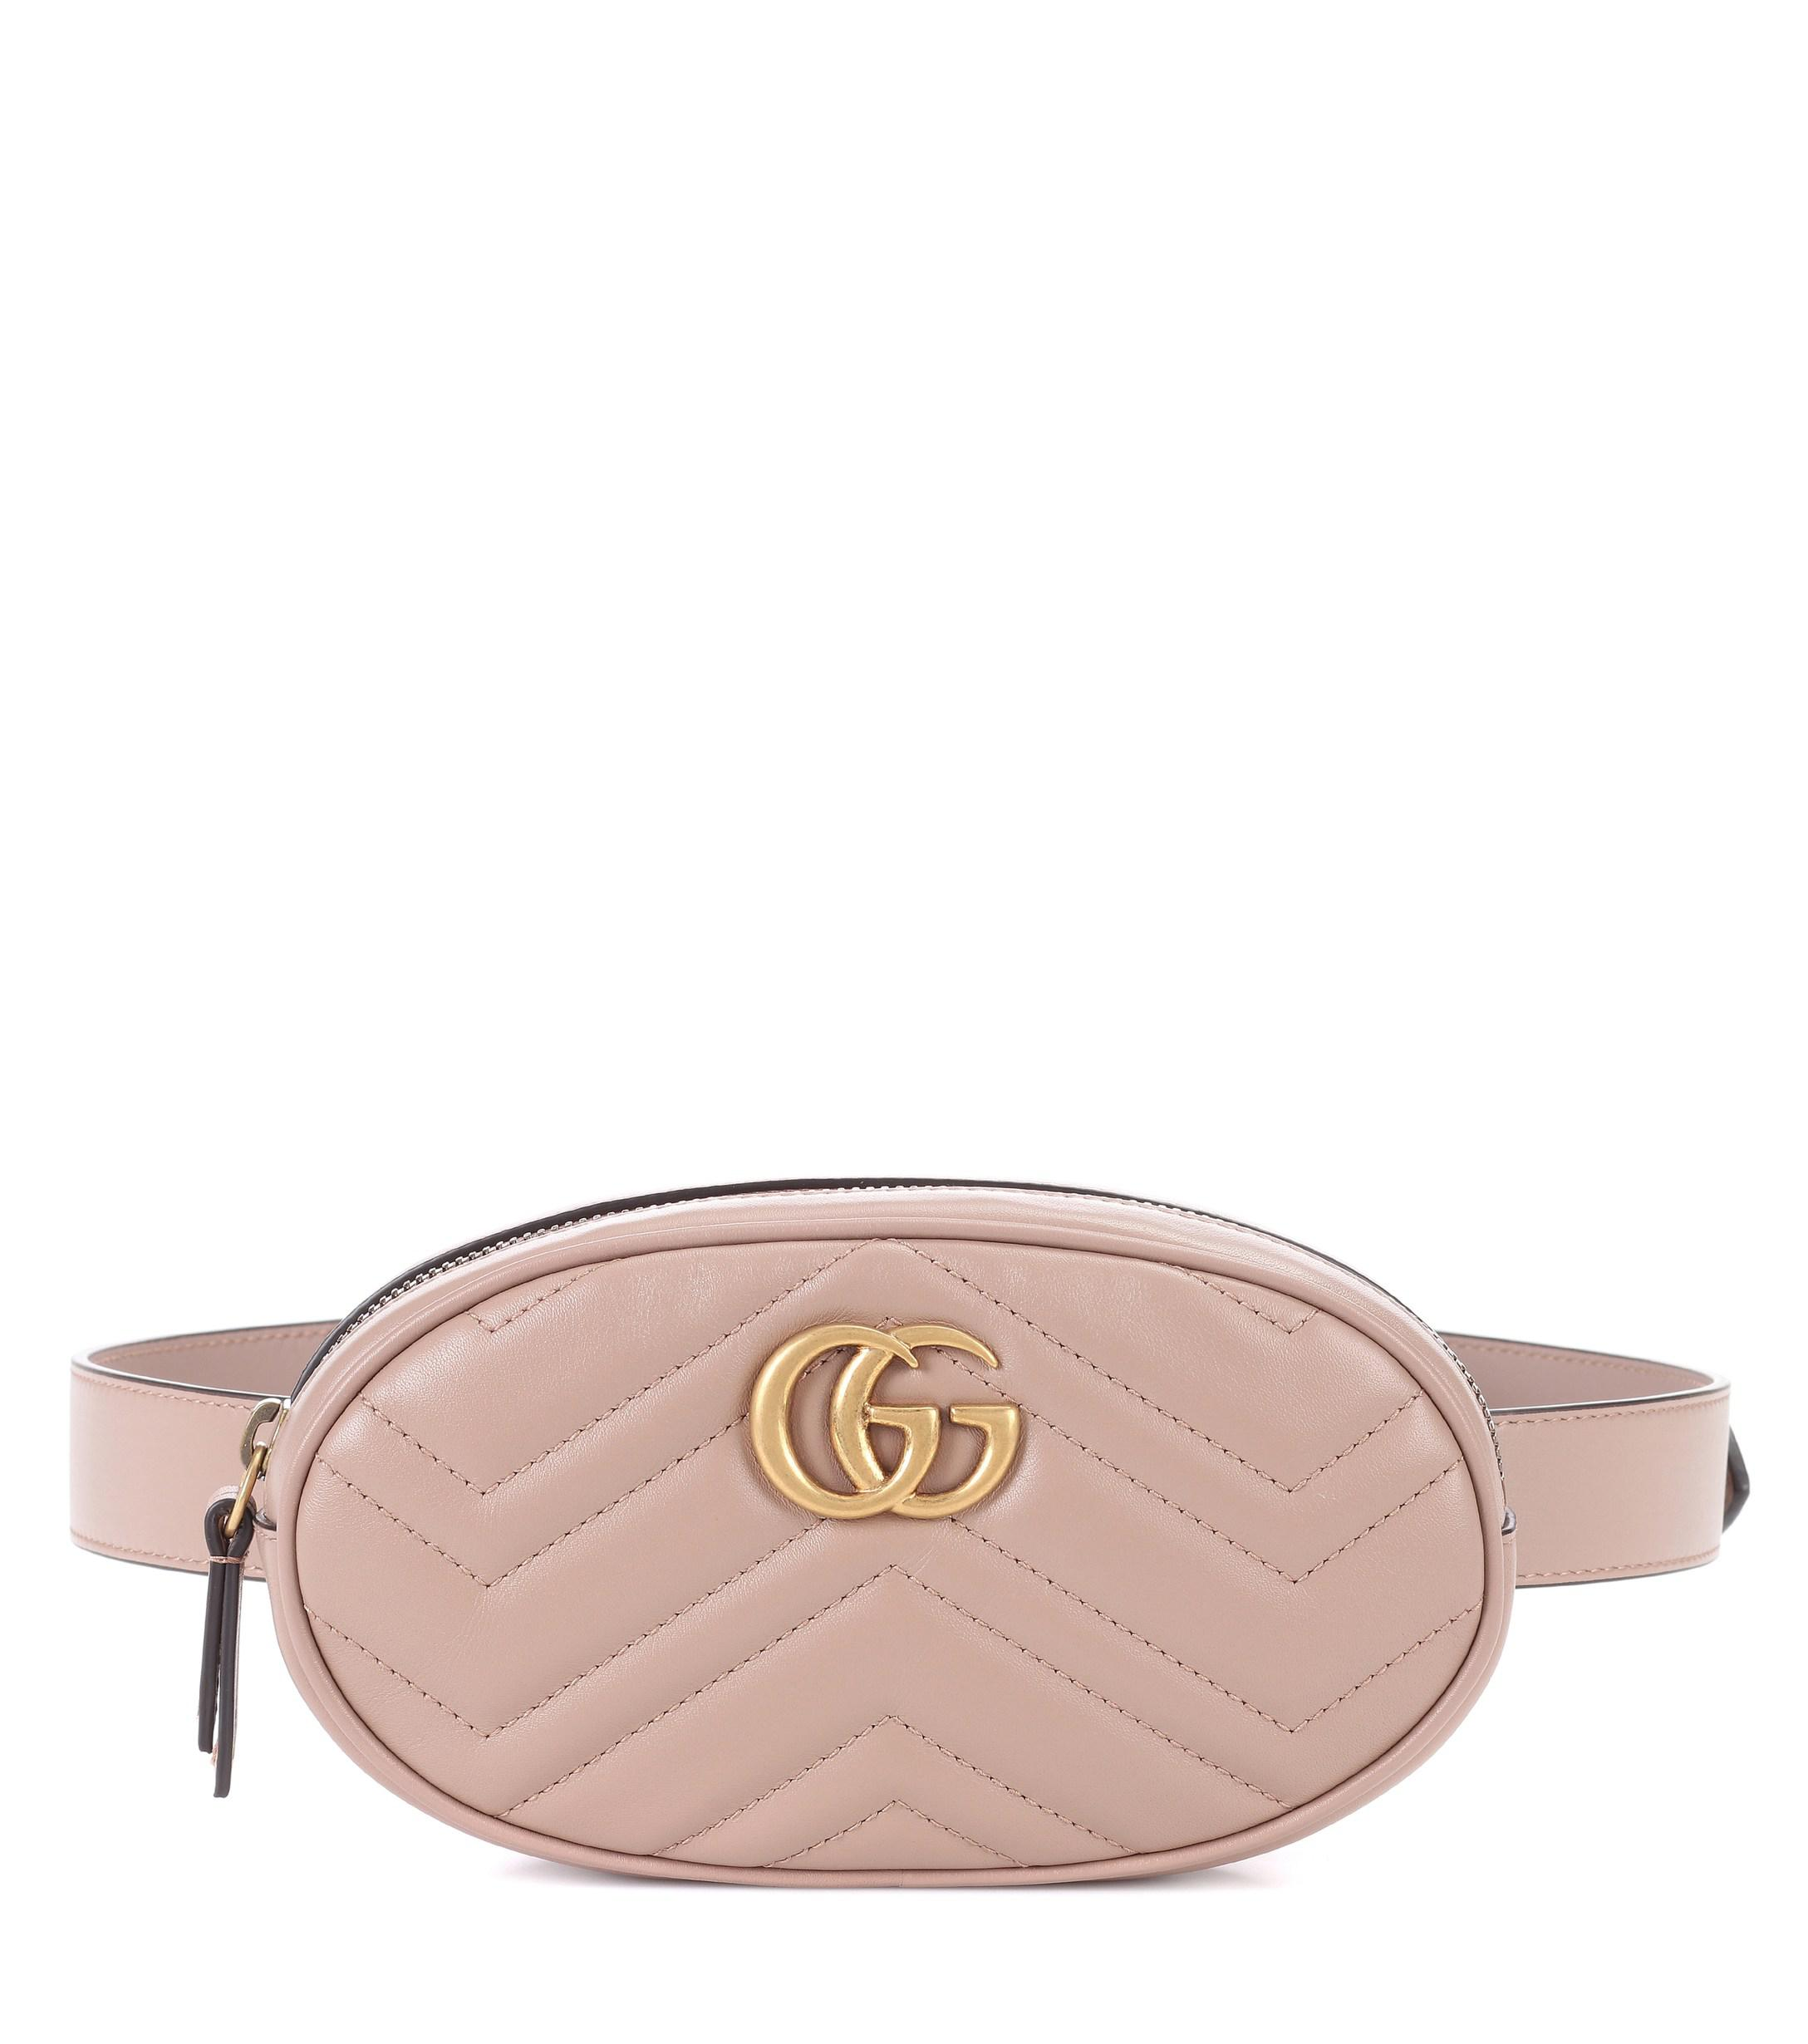 4ef09b33e28348 Gucci GG Marmont Leather Belt Bag in Natural - Lyst